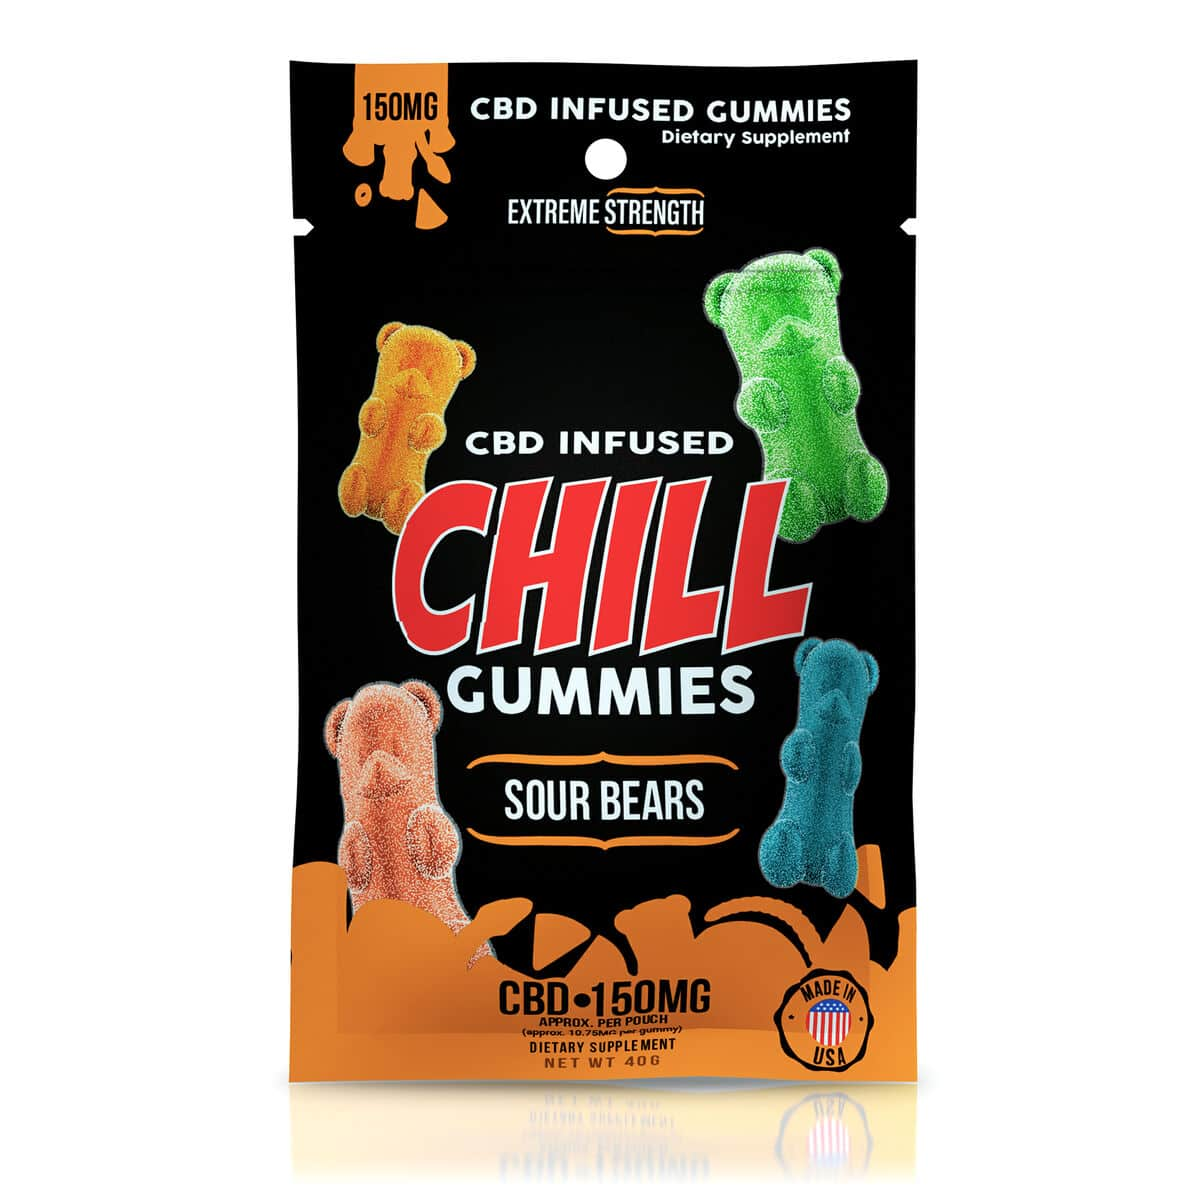 chill-gummies-cbd-infused-sour-bears-150mg (1)